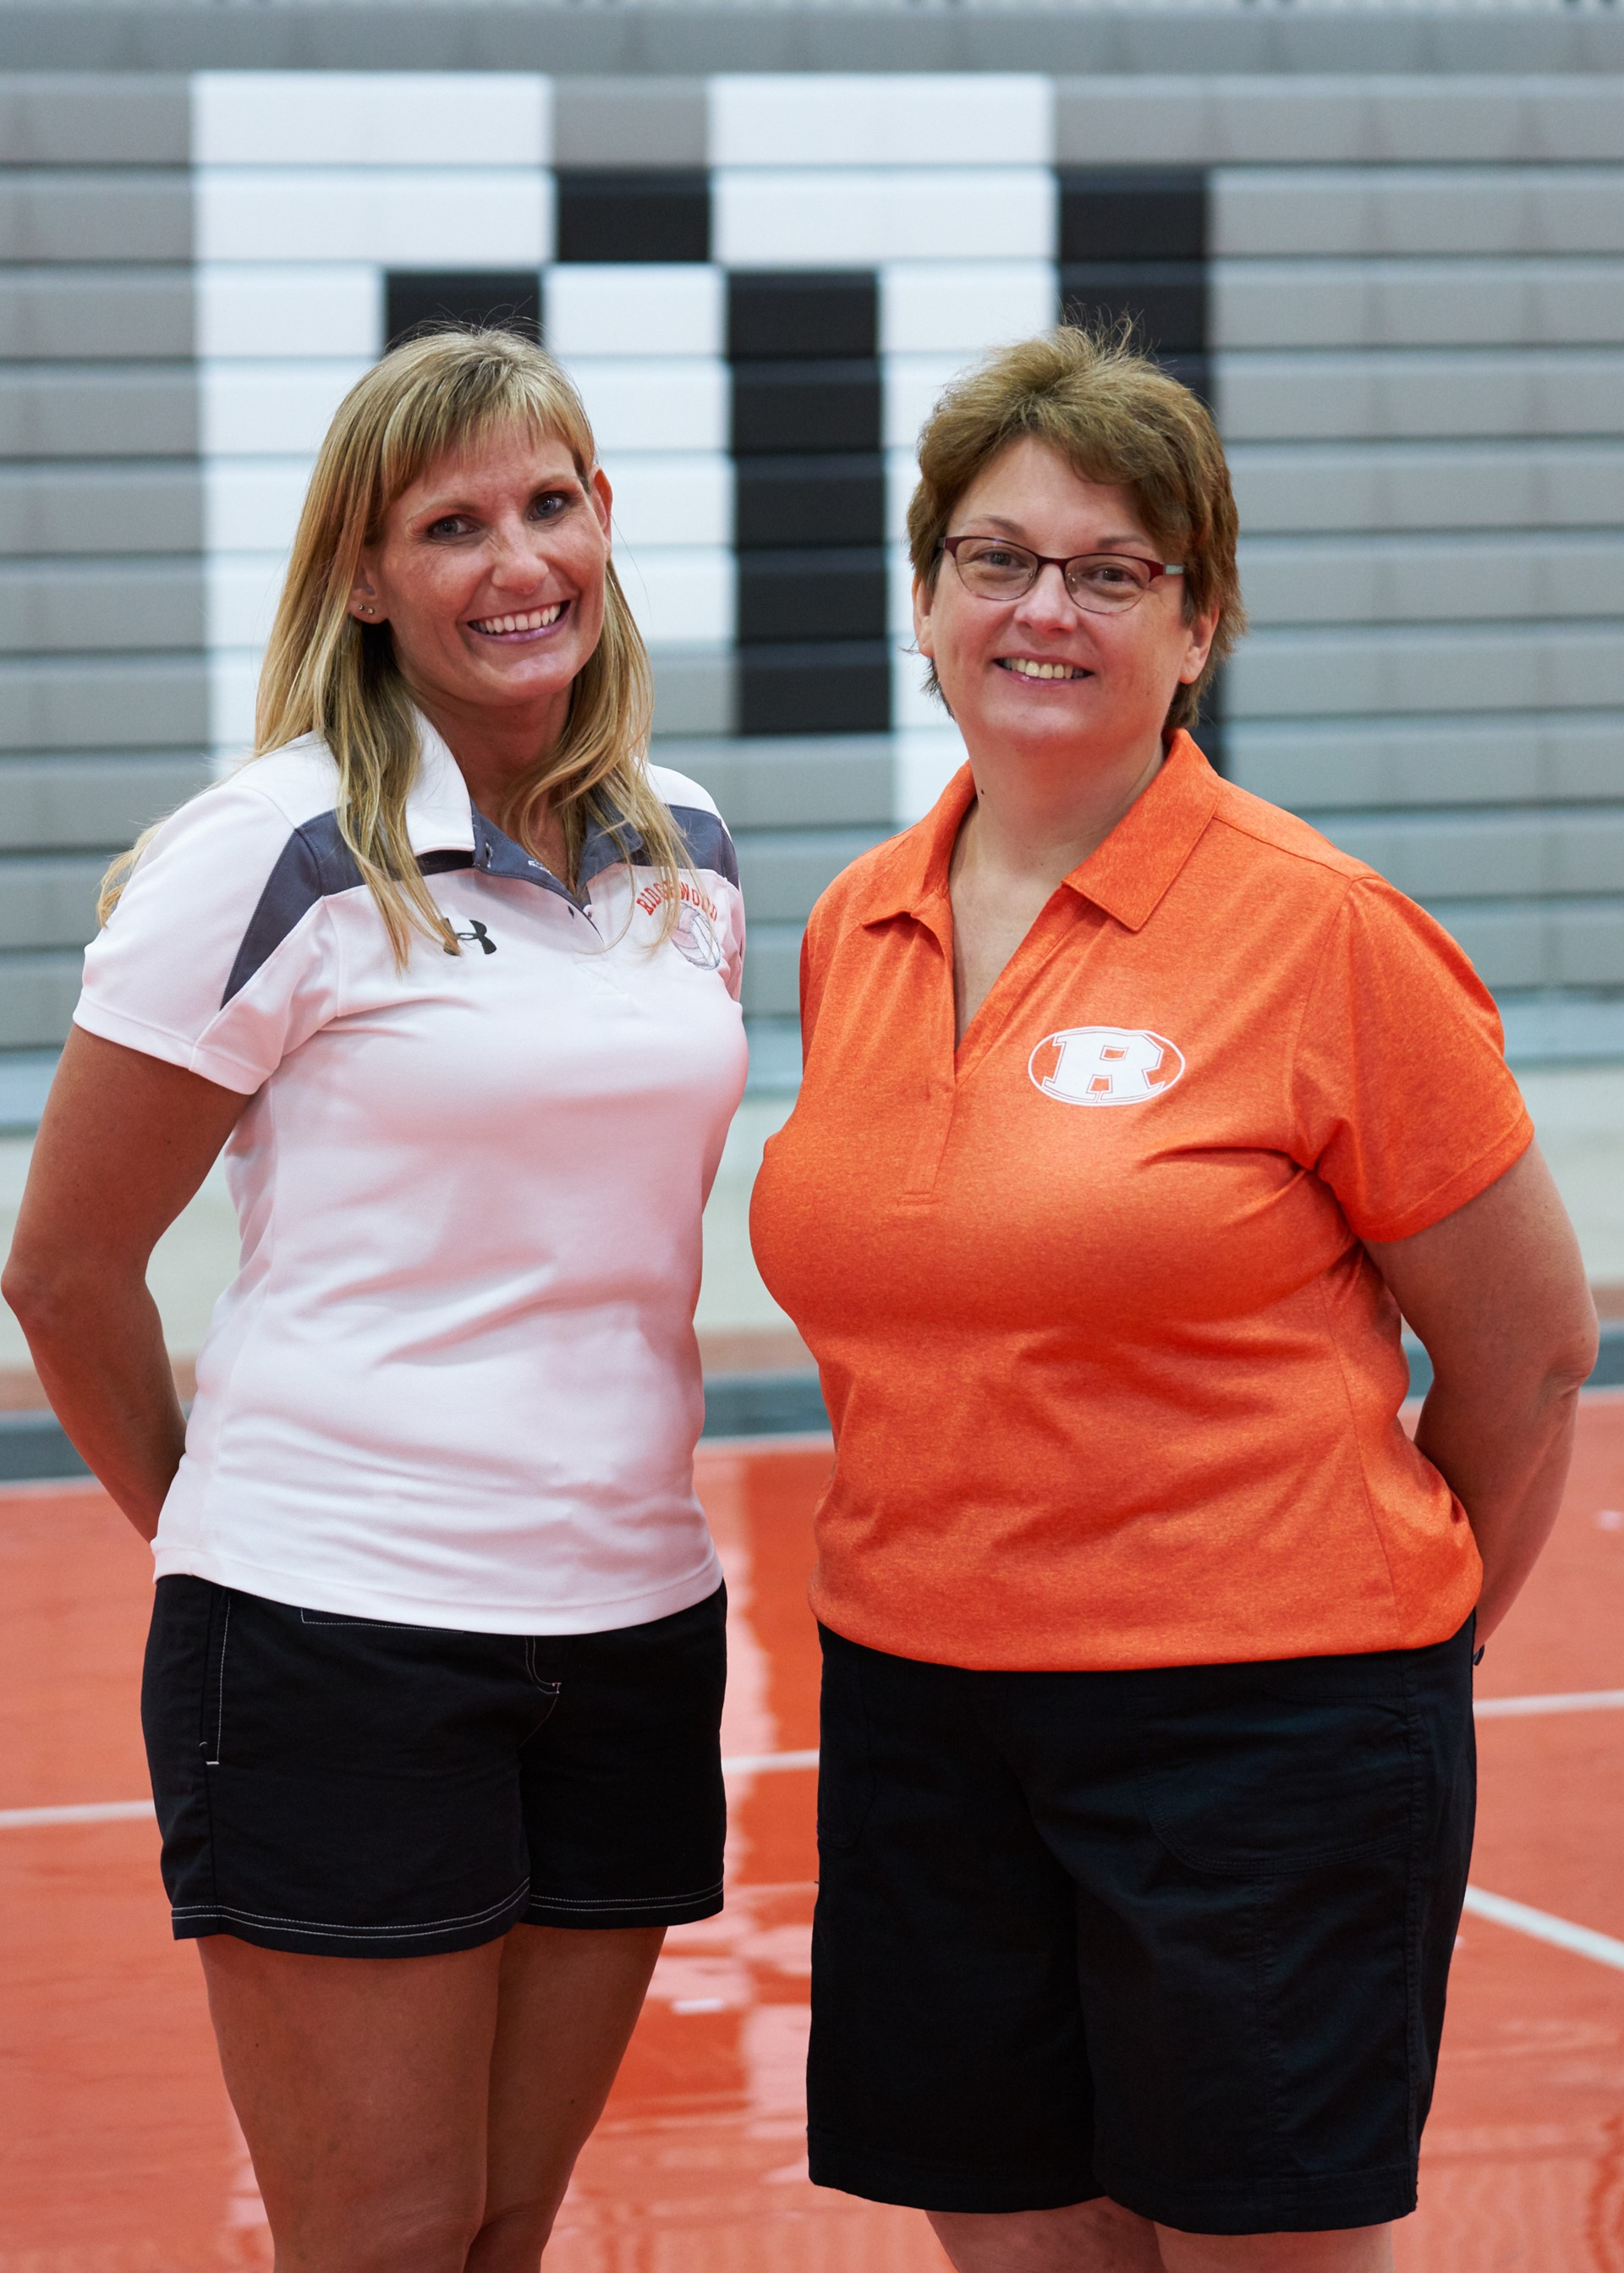 Jr. High Volleyball Coaches